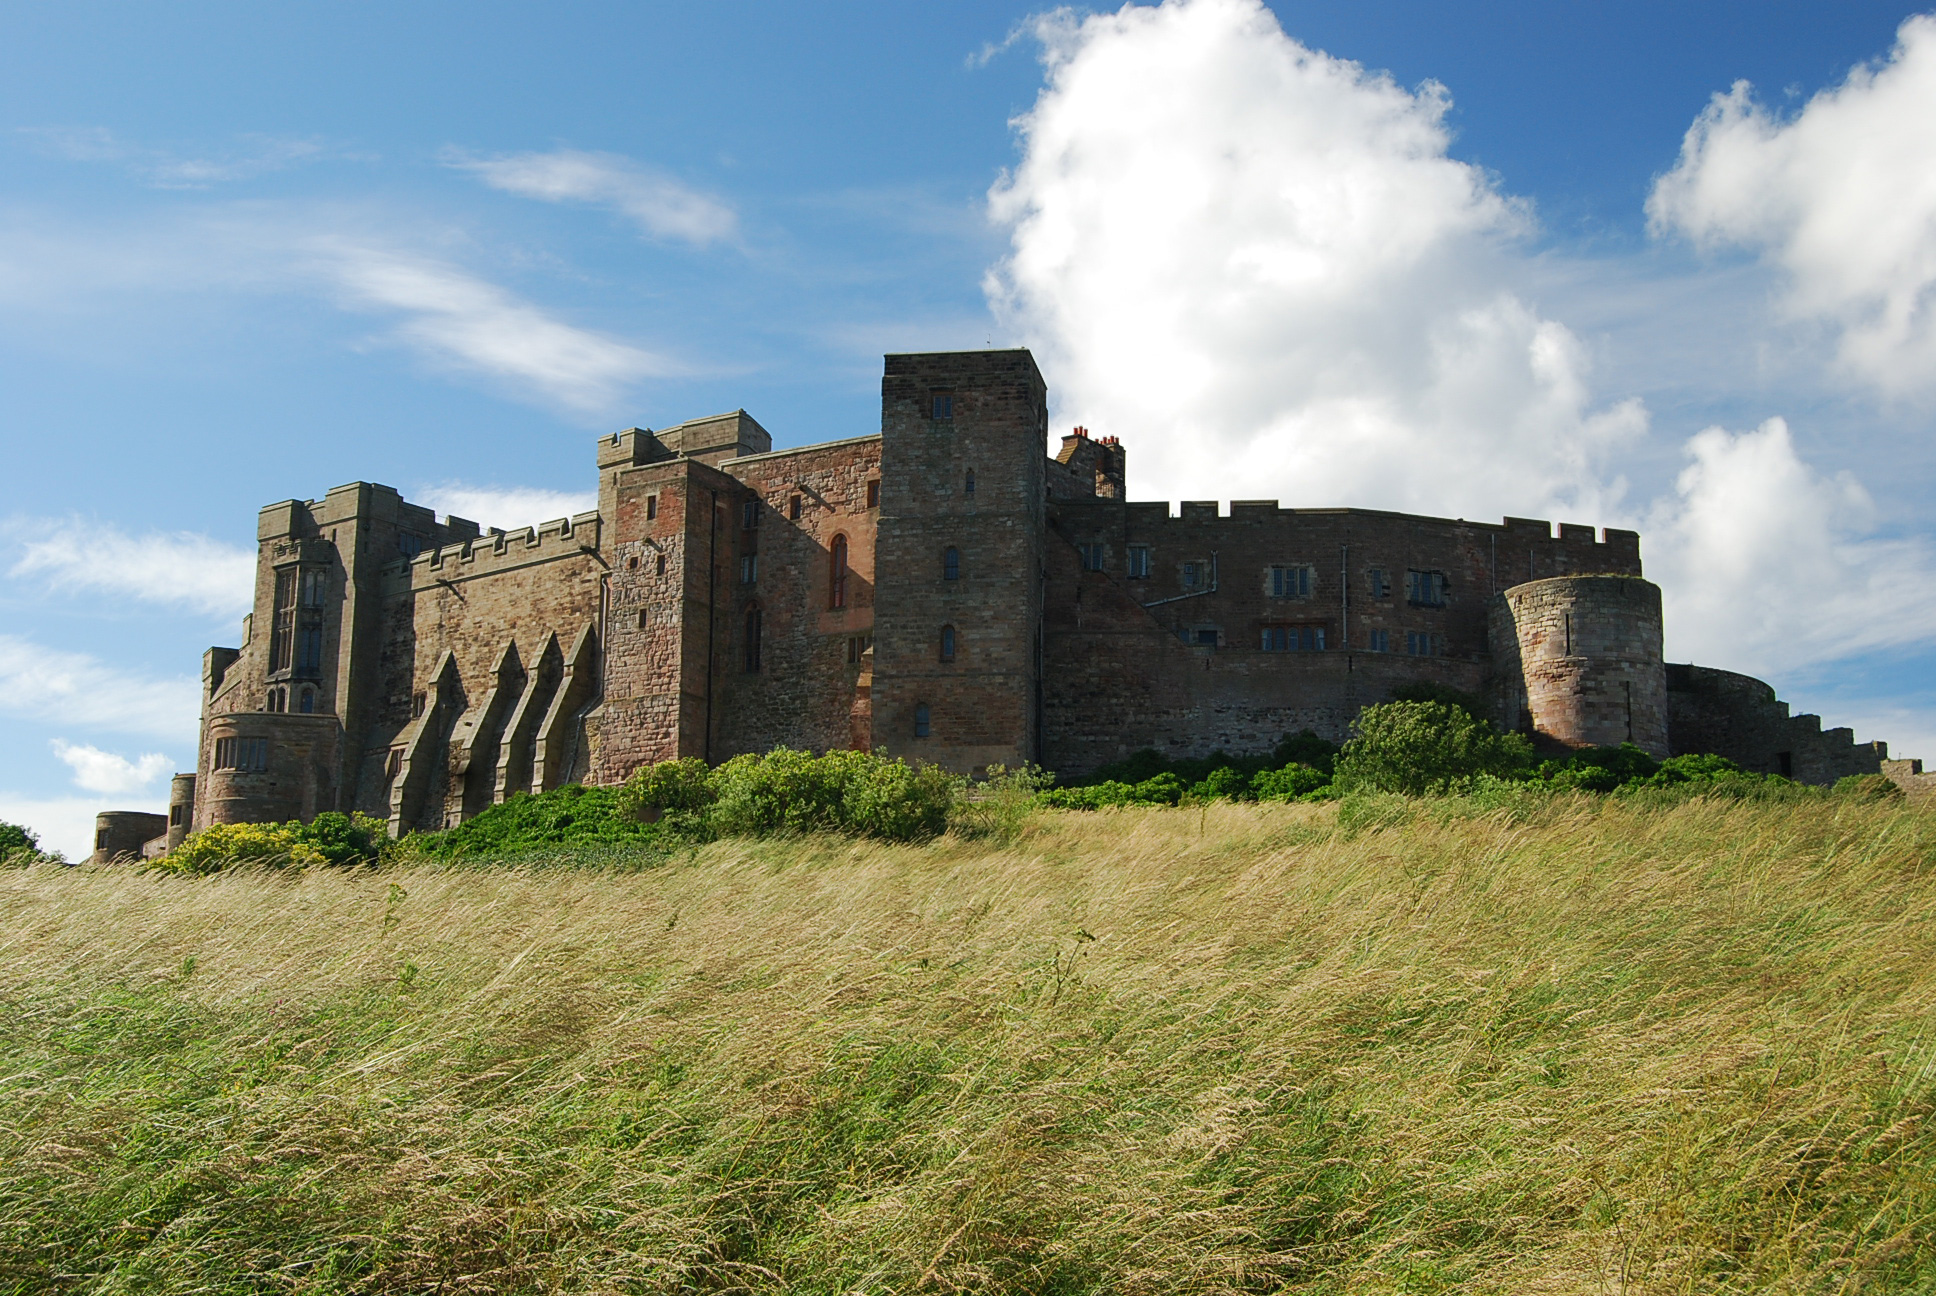 bamburgh castle - photo #19